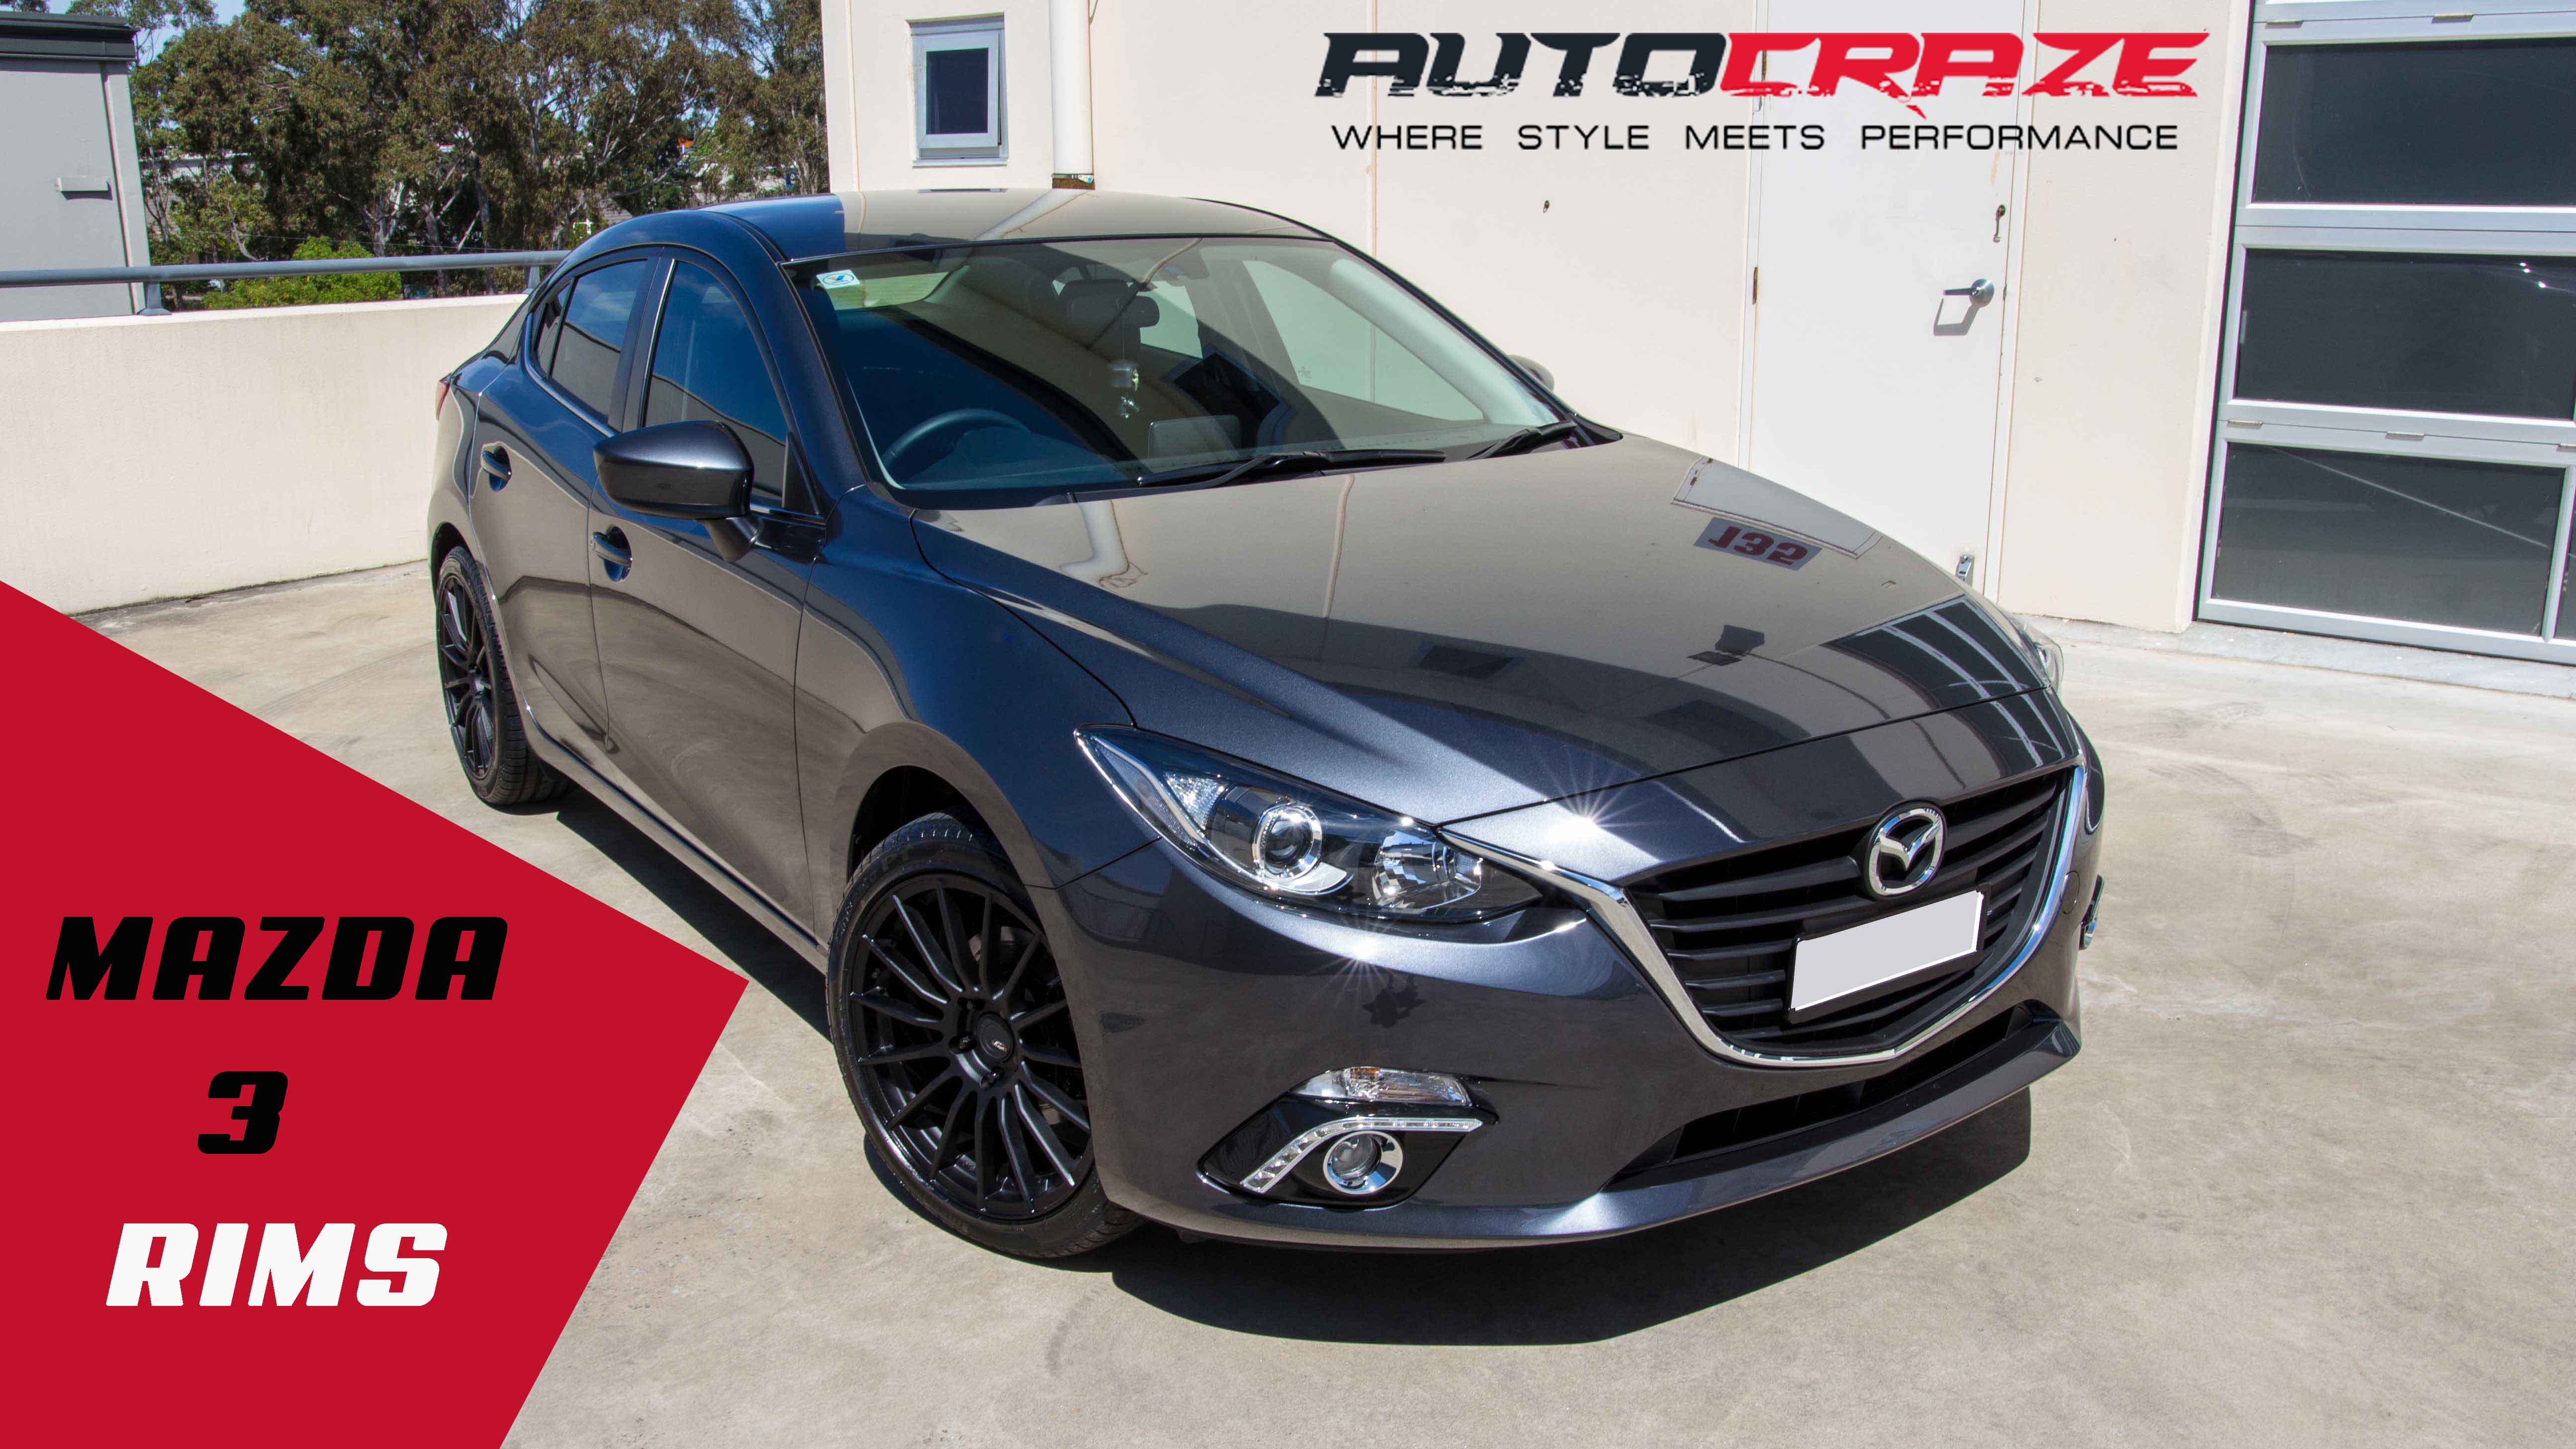 Mazda 3 Rims Top Brand Alloy Wheels To Suit Mazda 3